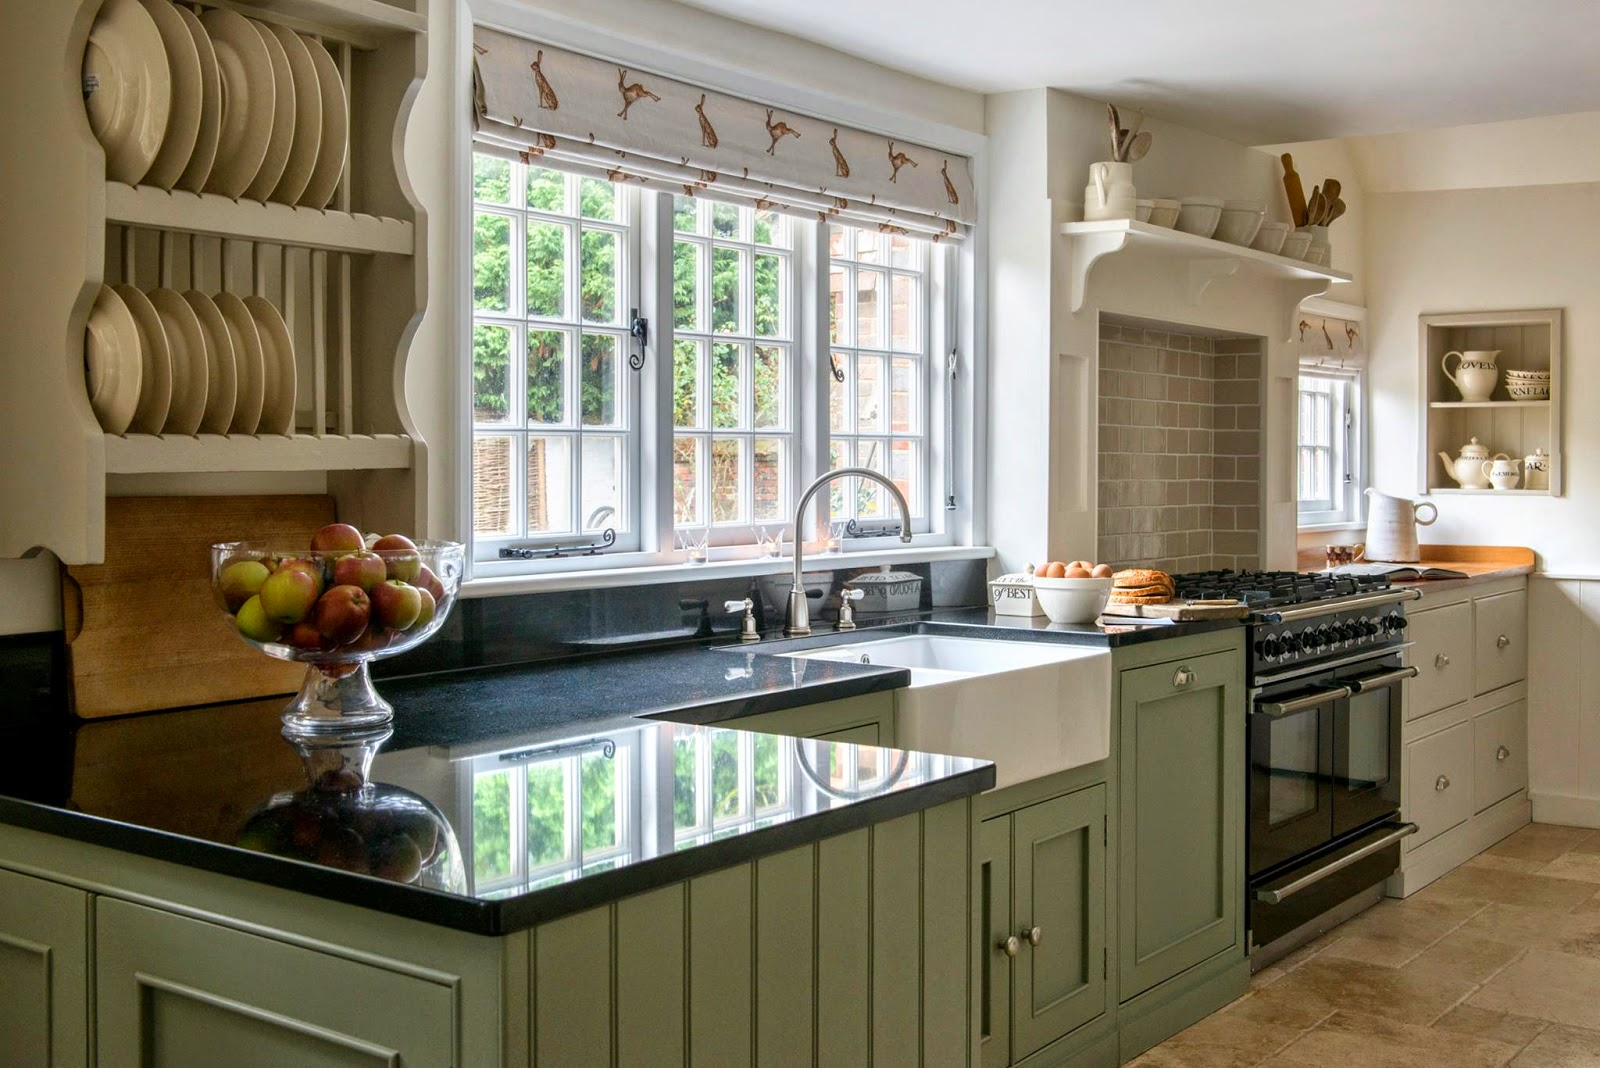 ... and granite in the kitchen is a fantastic mix of Modern and Country